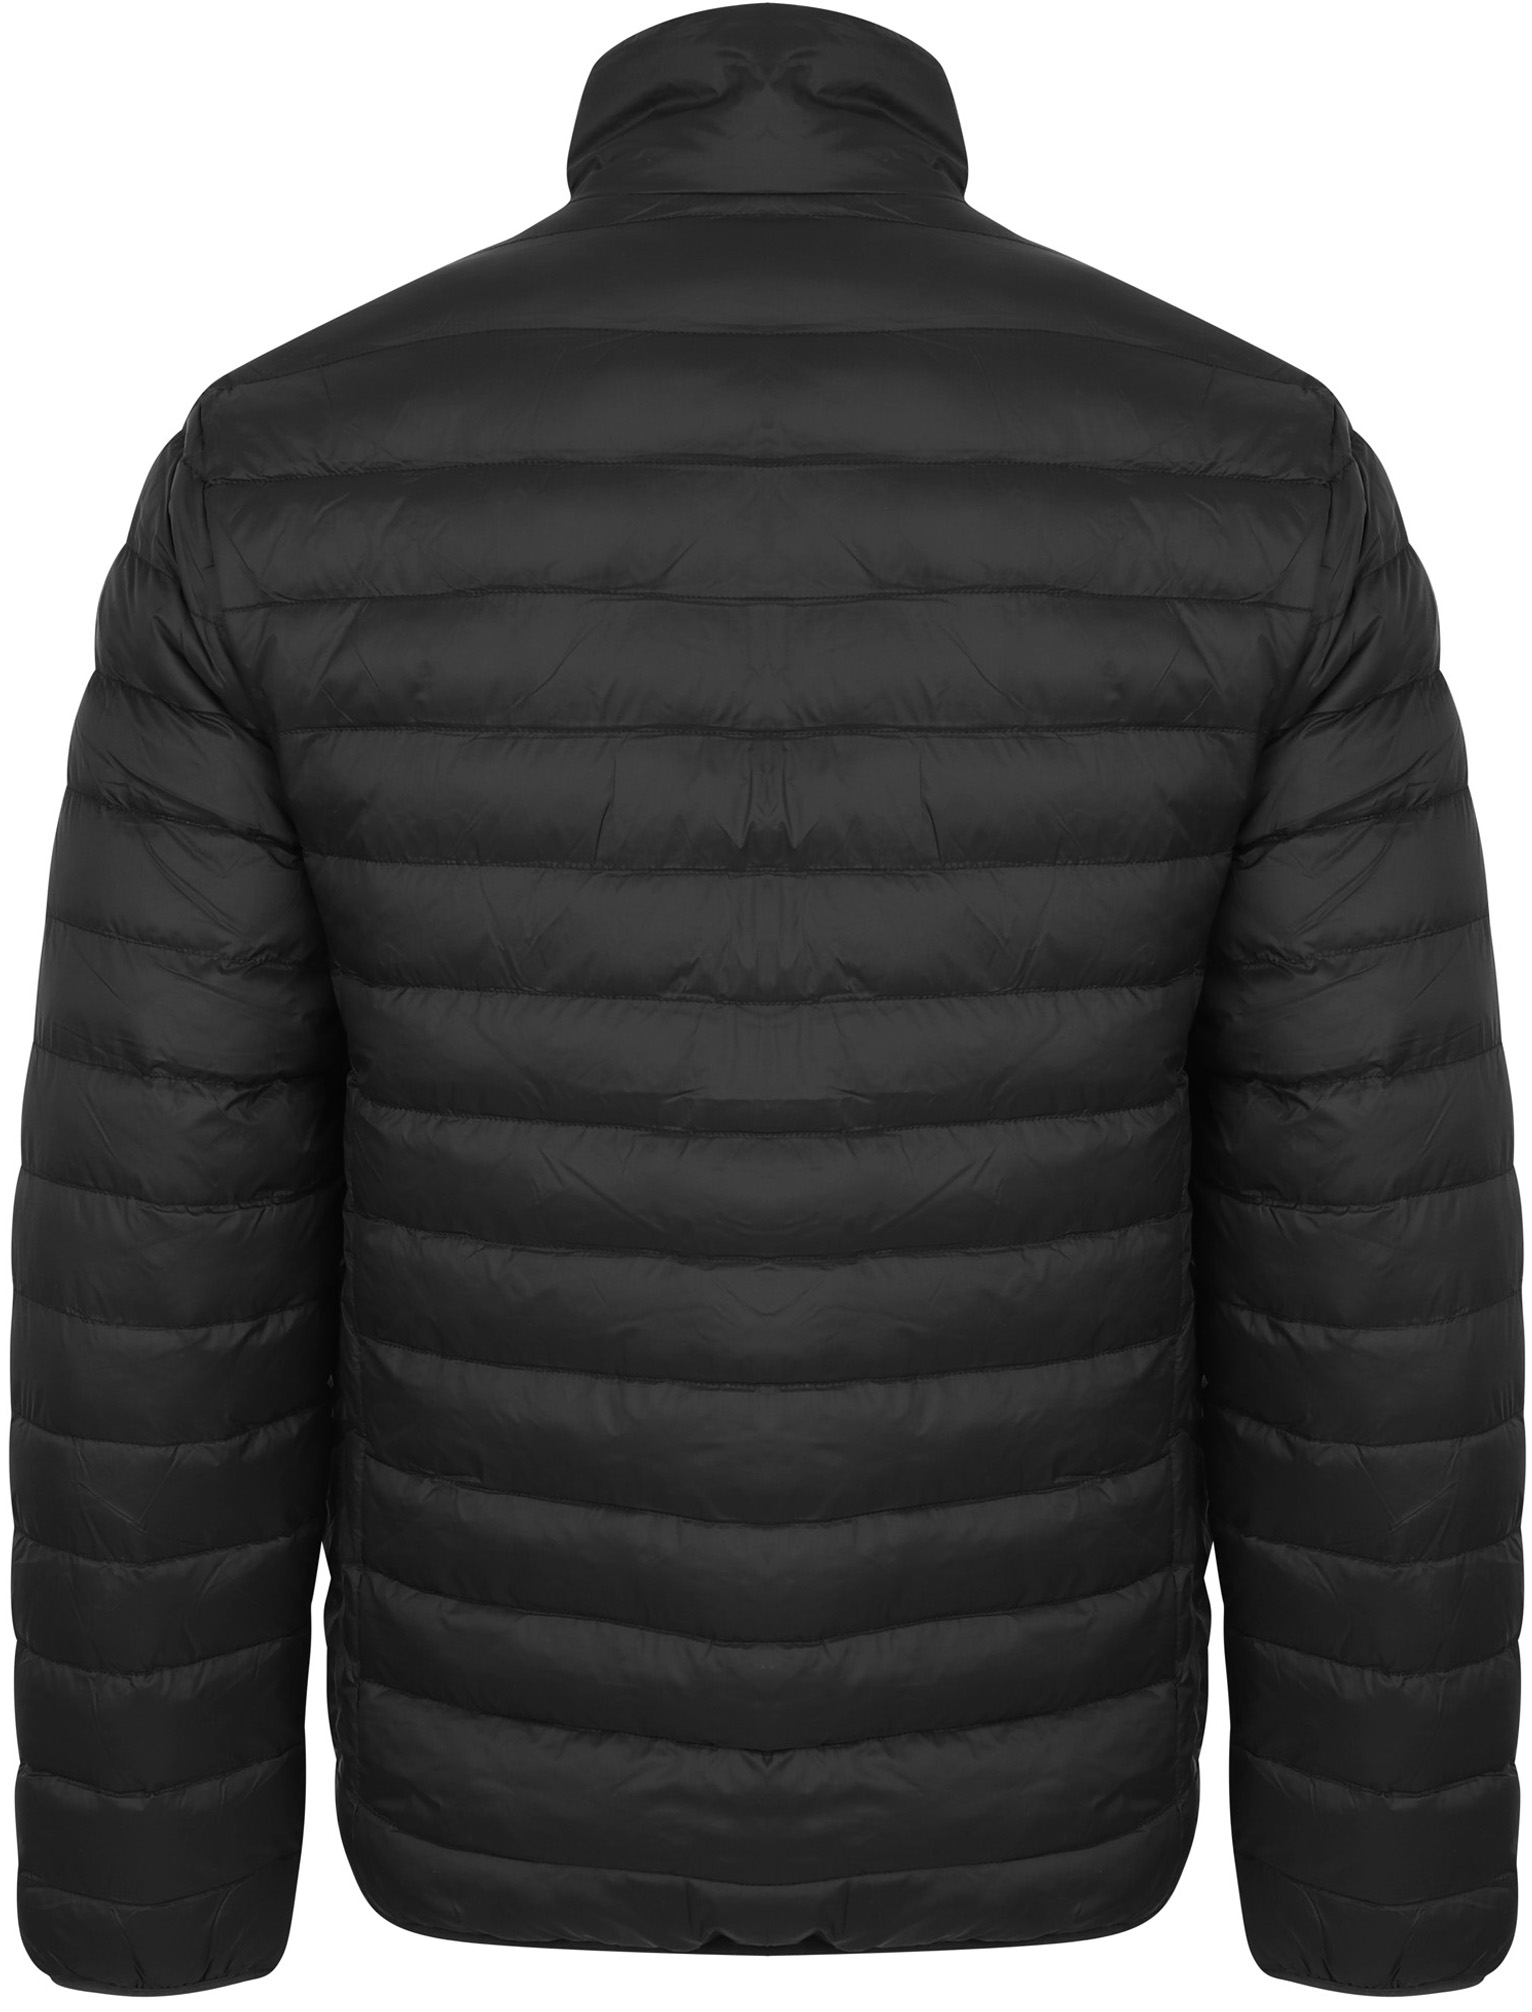 Tokyo-Laundry-Men-039-s-Bakman-Plain-Quilted-Padded-Puffer-Bubble-Jacket thumbnail 9